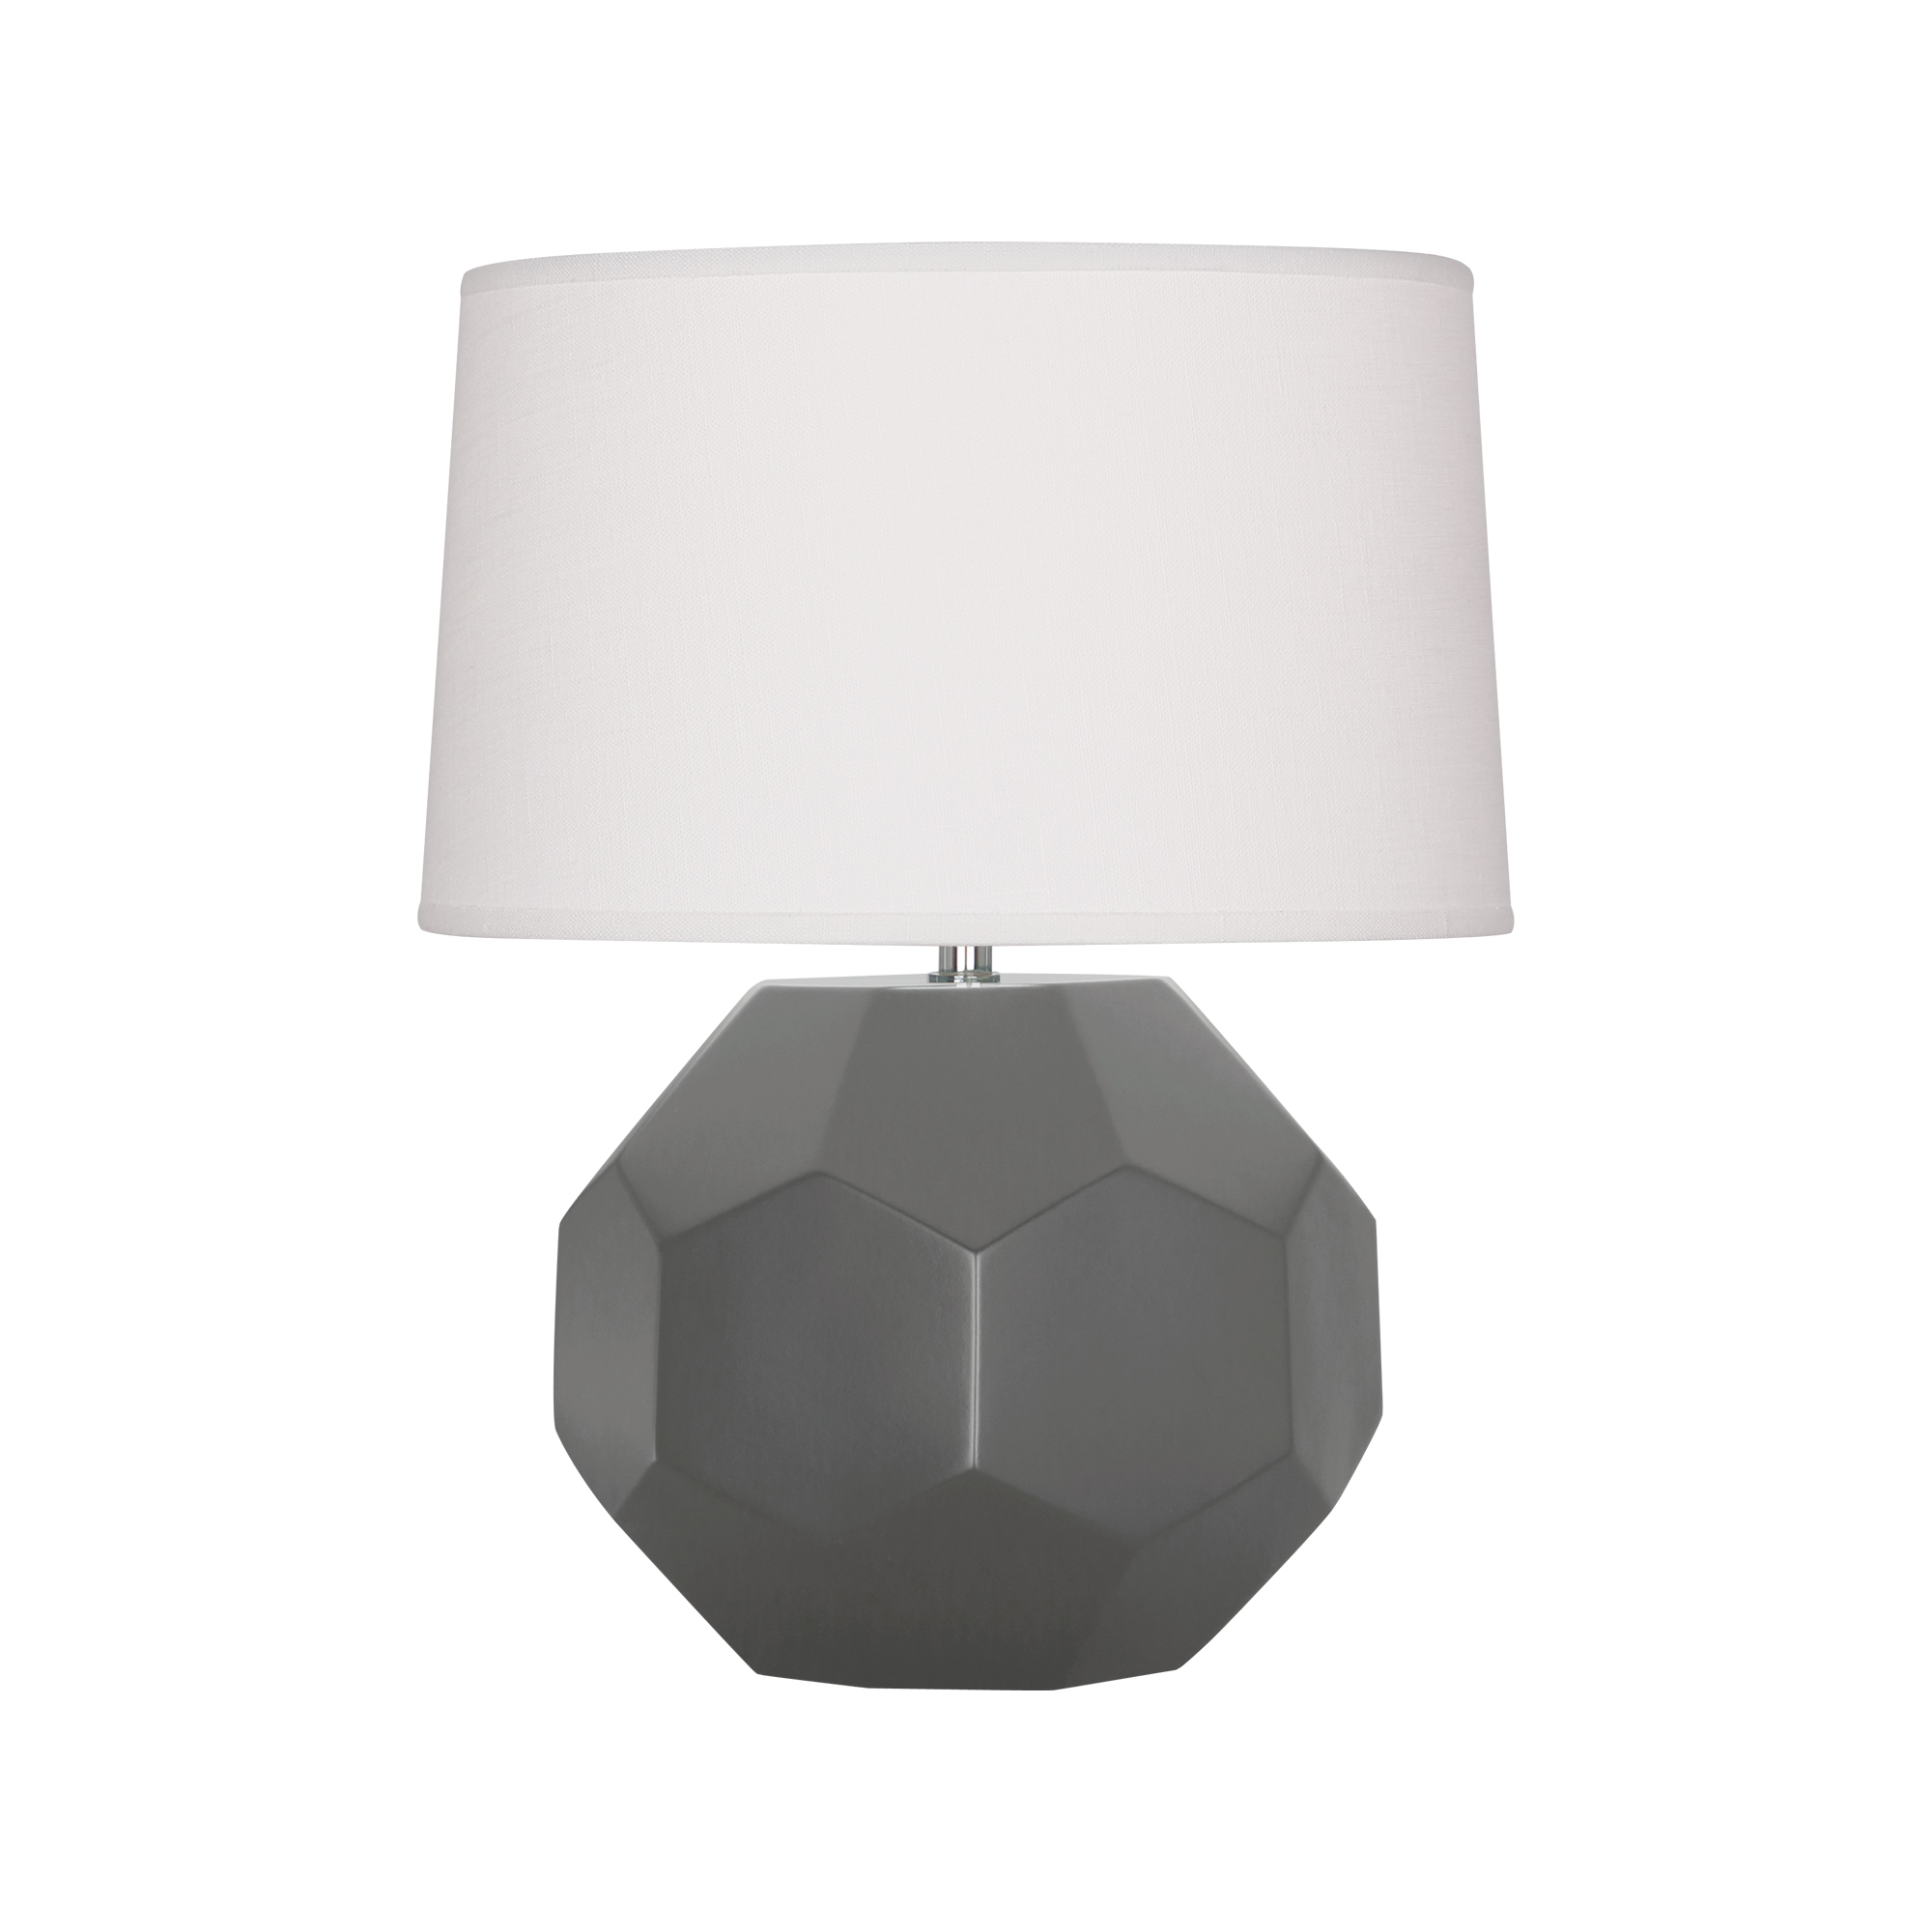 Franklin Accent Lamp Style #MCR02